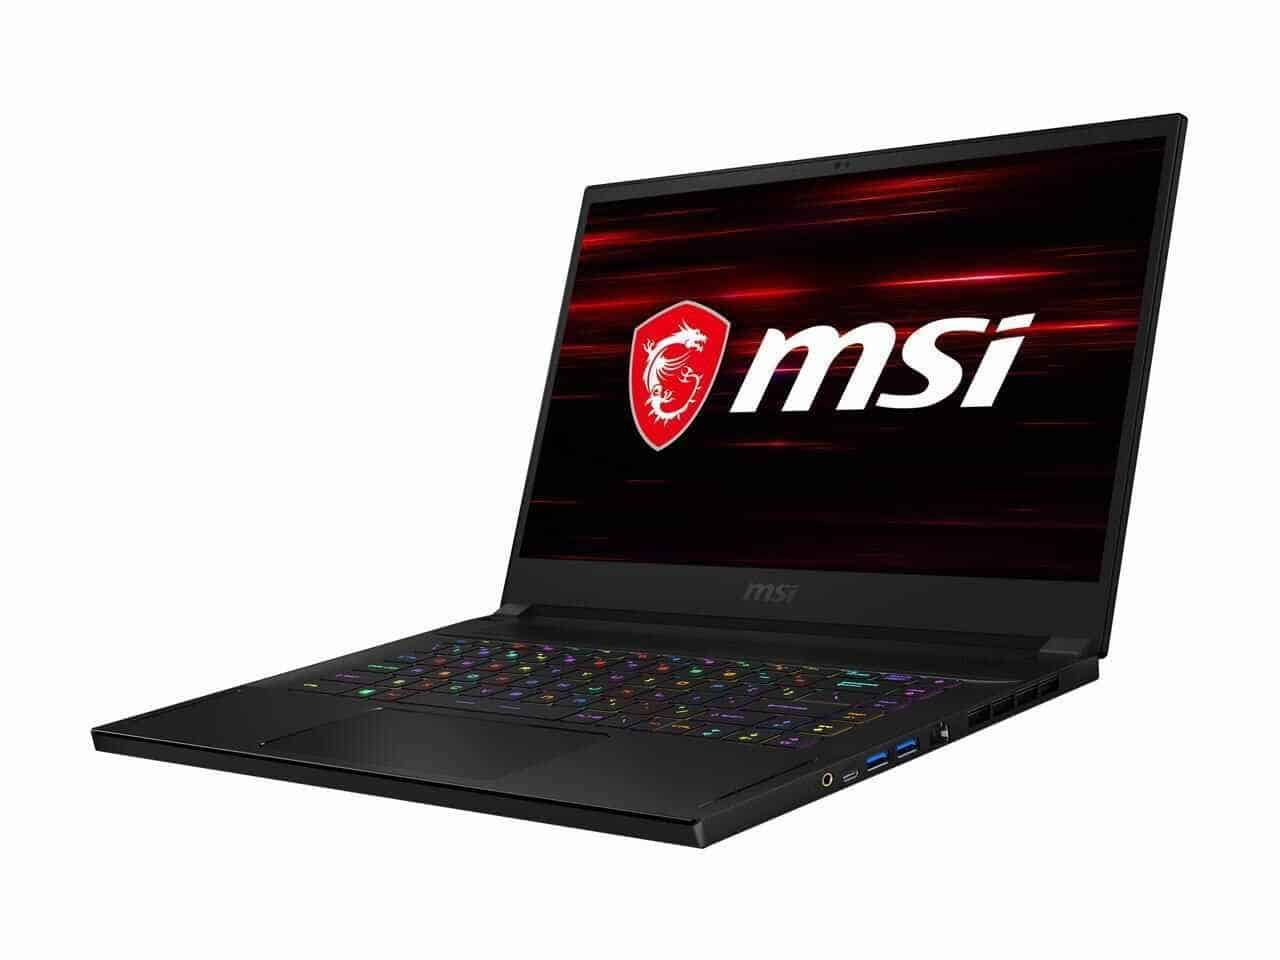 Best Laptop for Gaming and Work: MSI GS66 Stealth